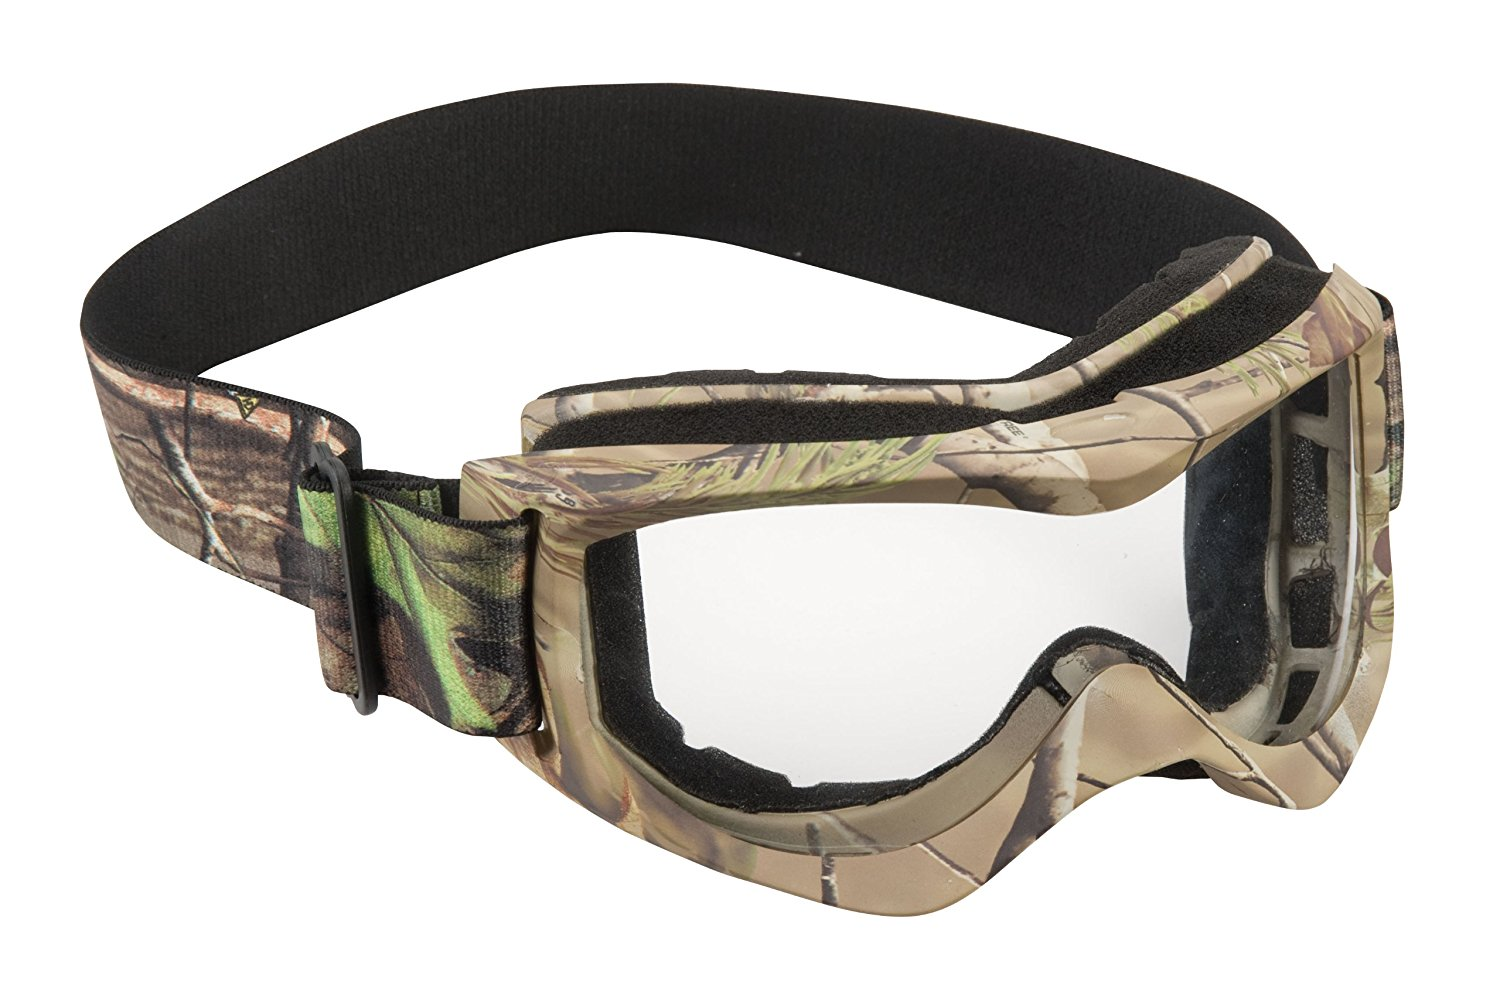 Best ATV Goggles